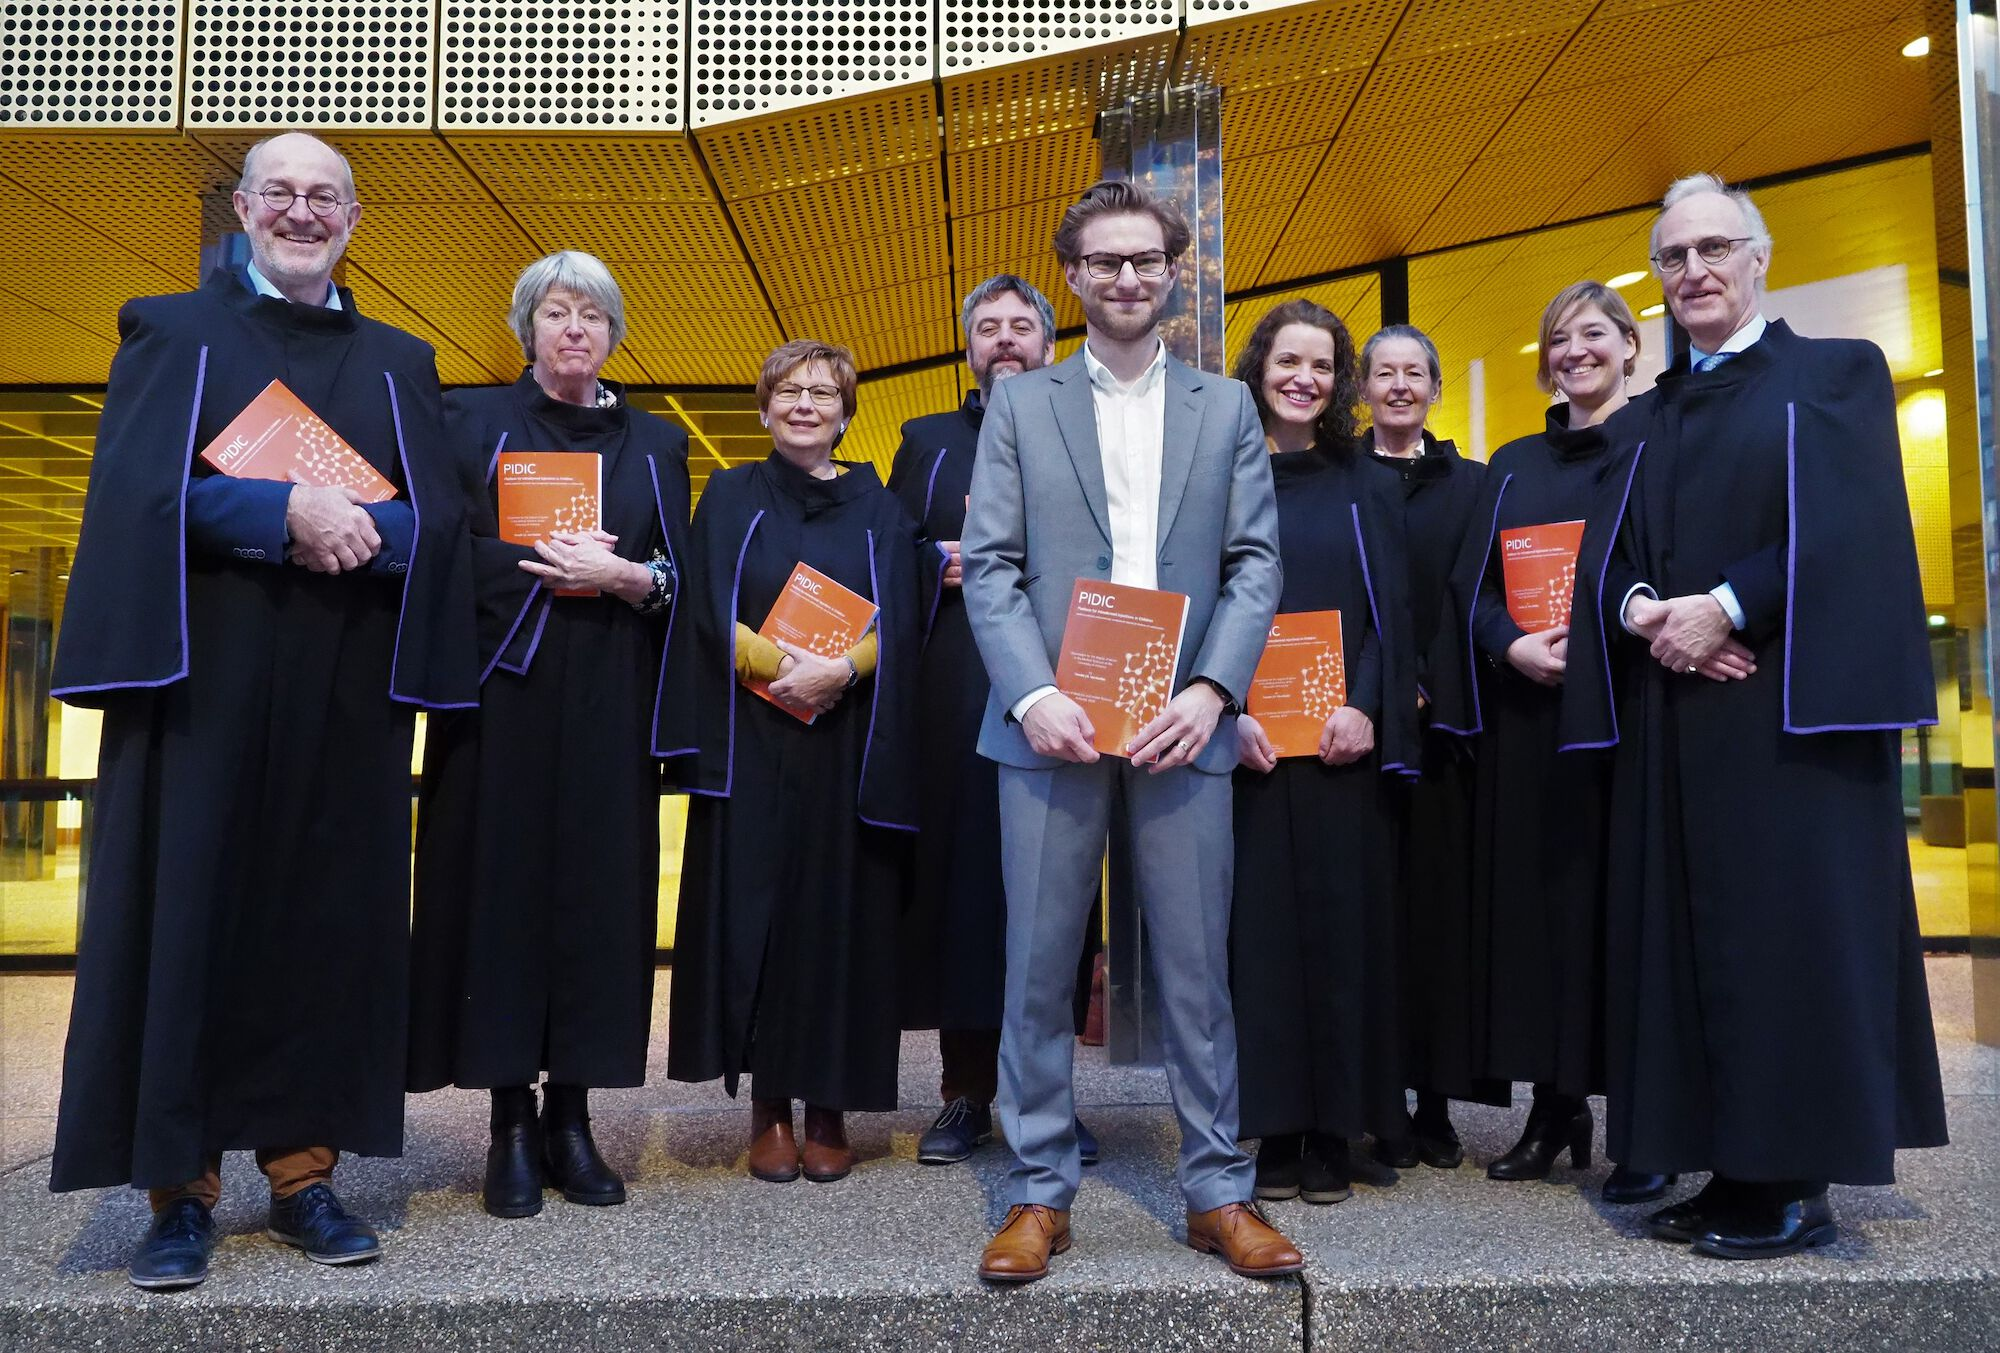 Doctoraatsverdediging Timothi Van Mulder - 19 december 2019